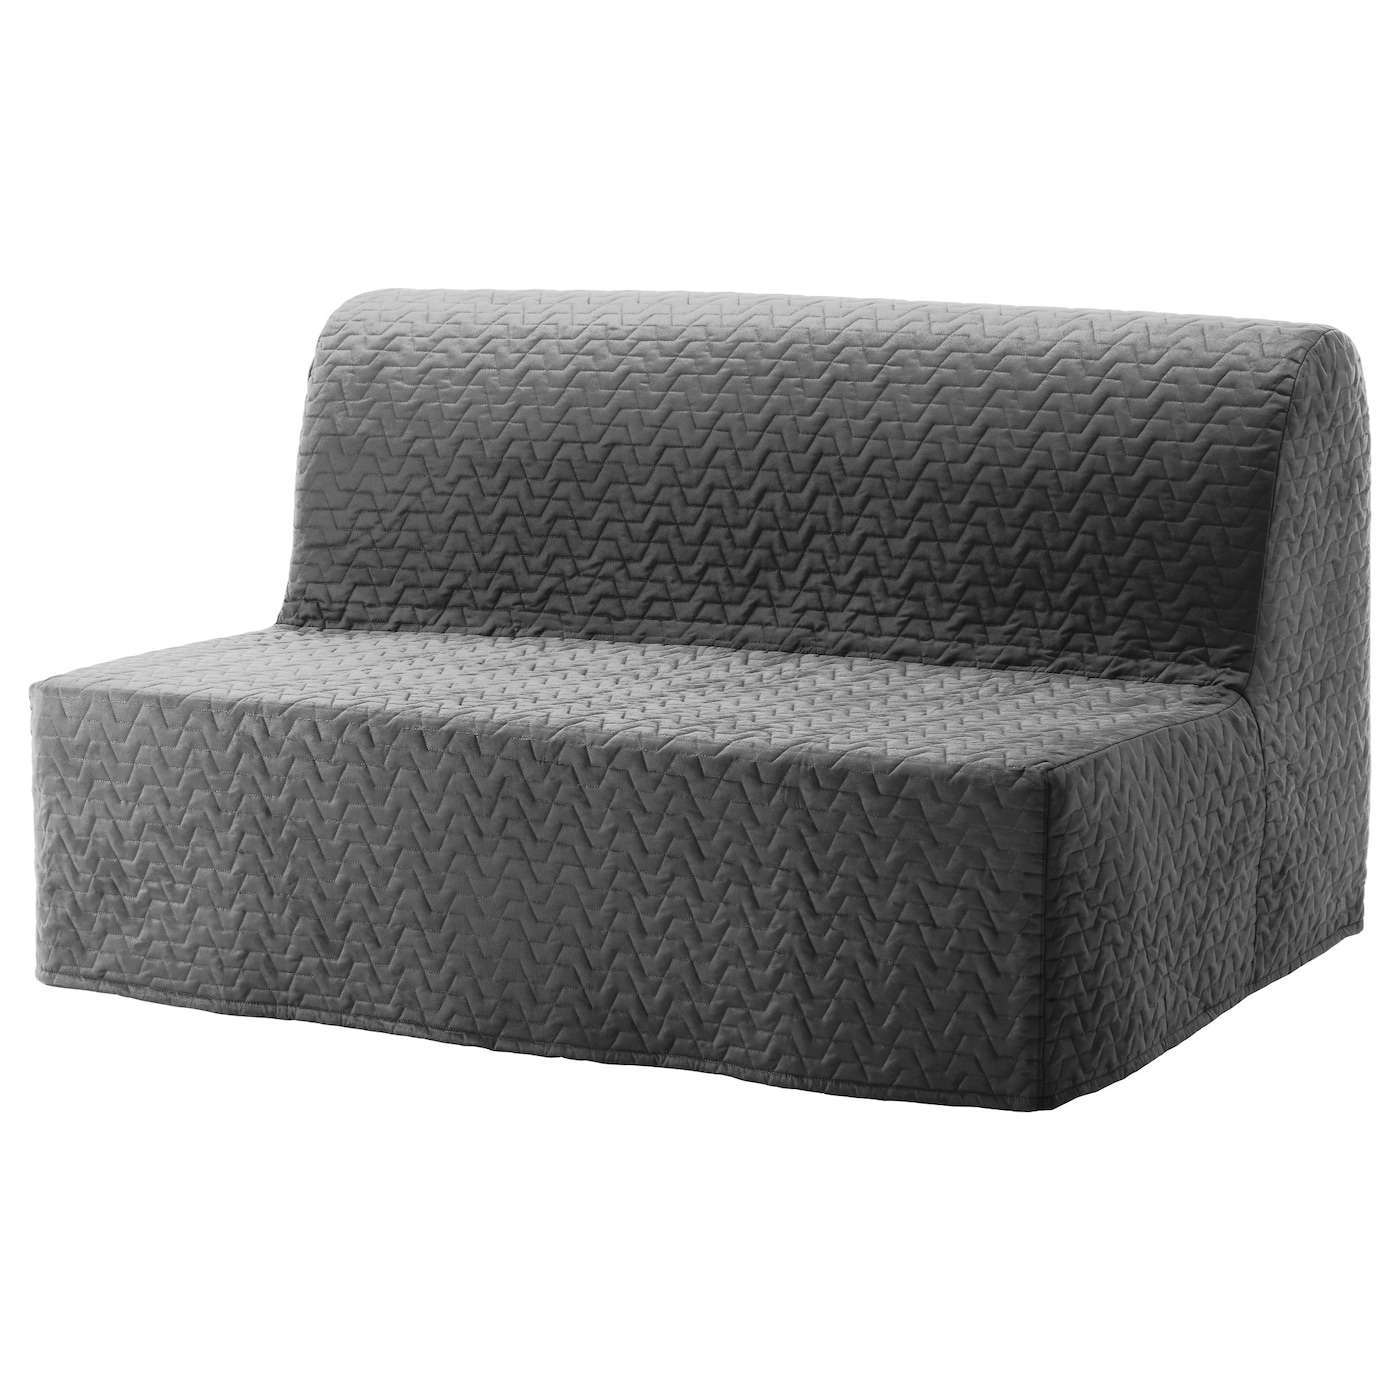 Ikea Lycksele Two Seat Sofa Bed Cover